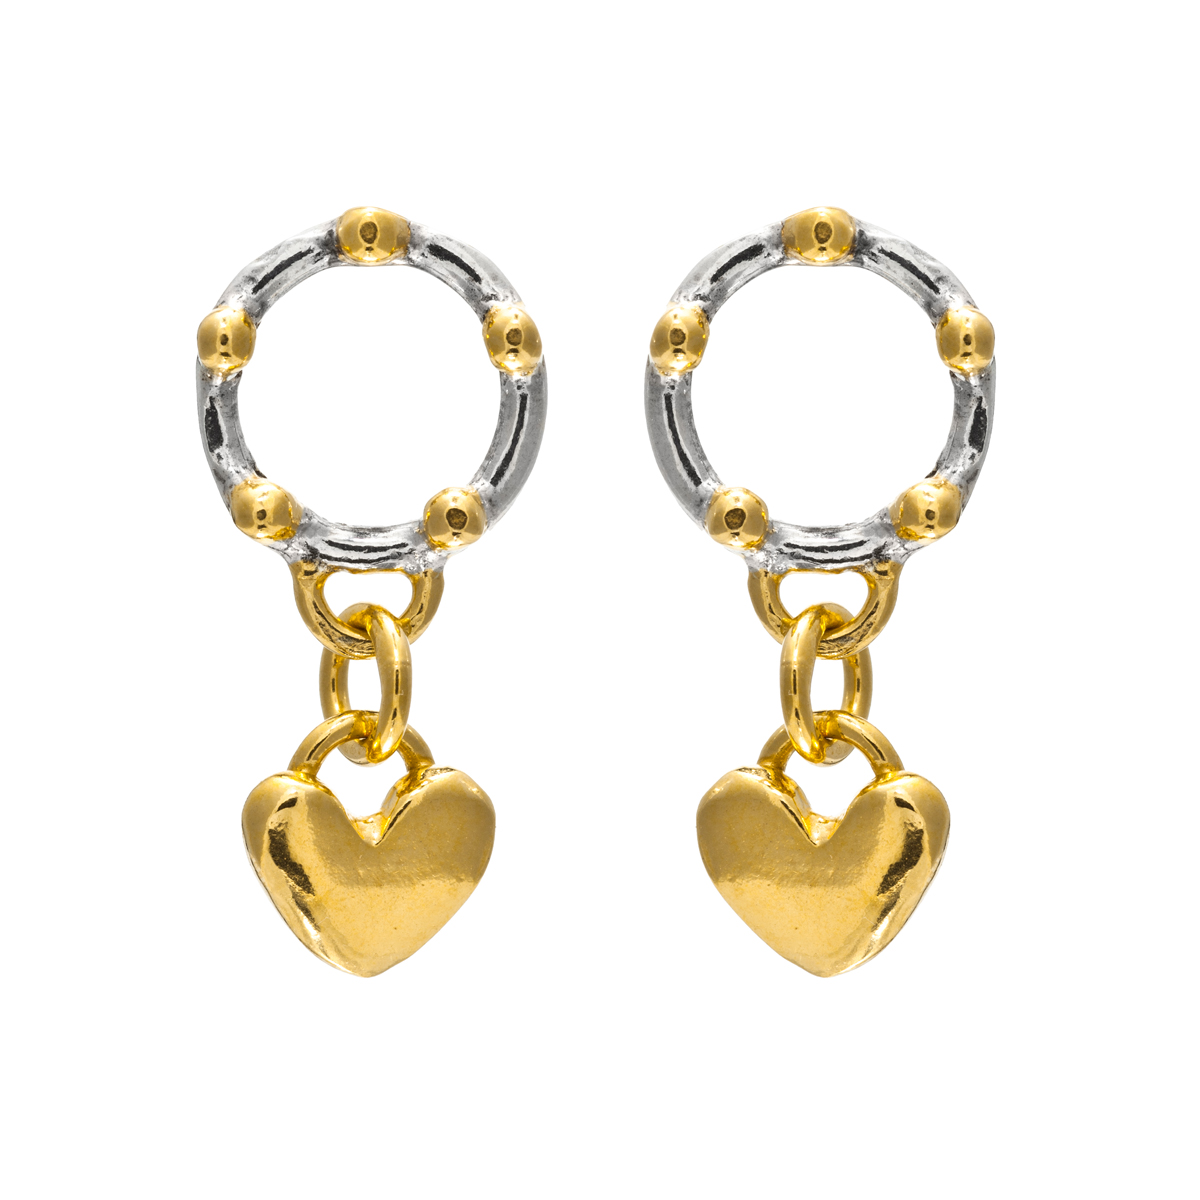 sophie harley earrings gold plated.jpg